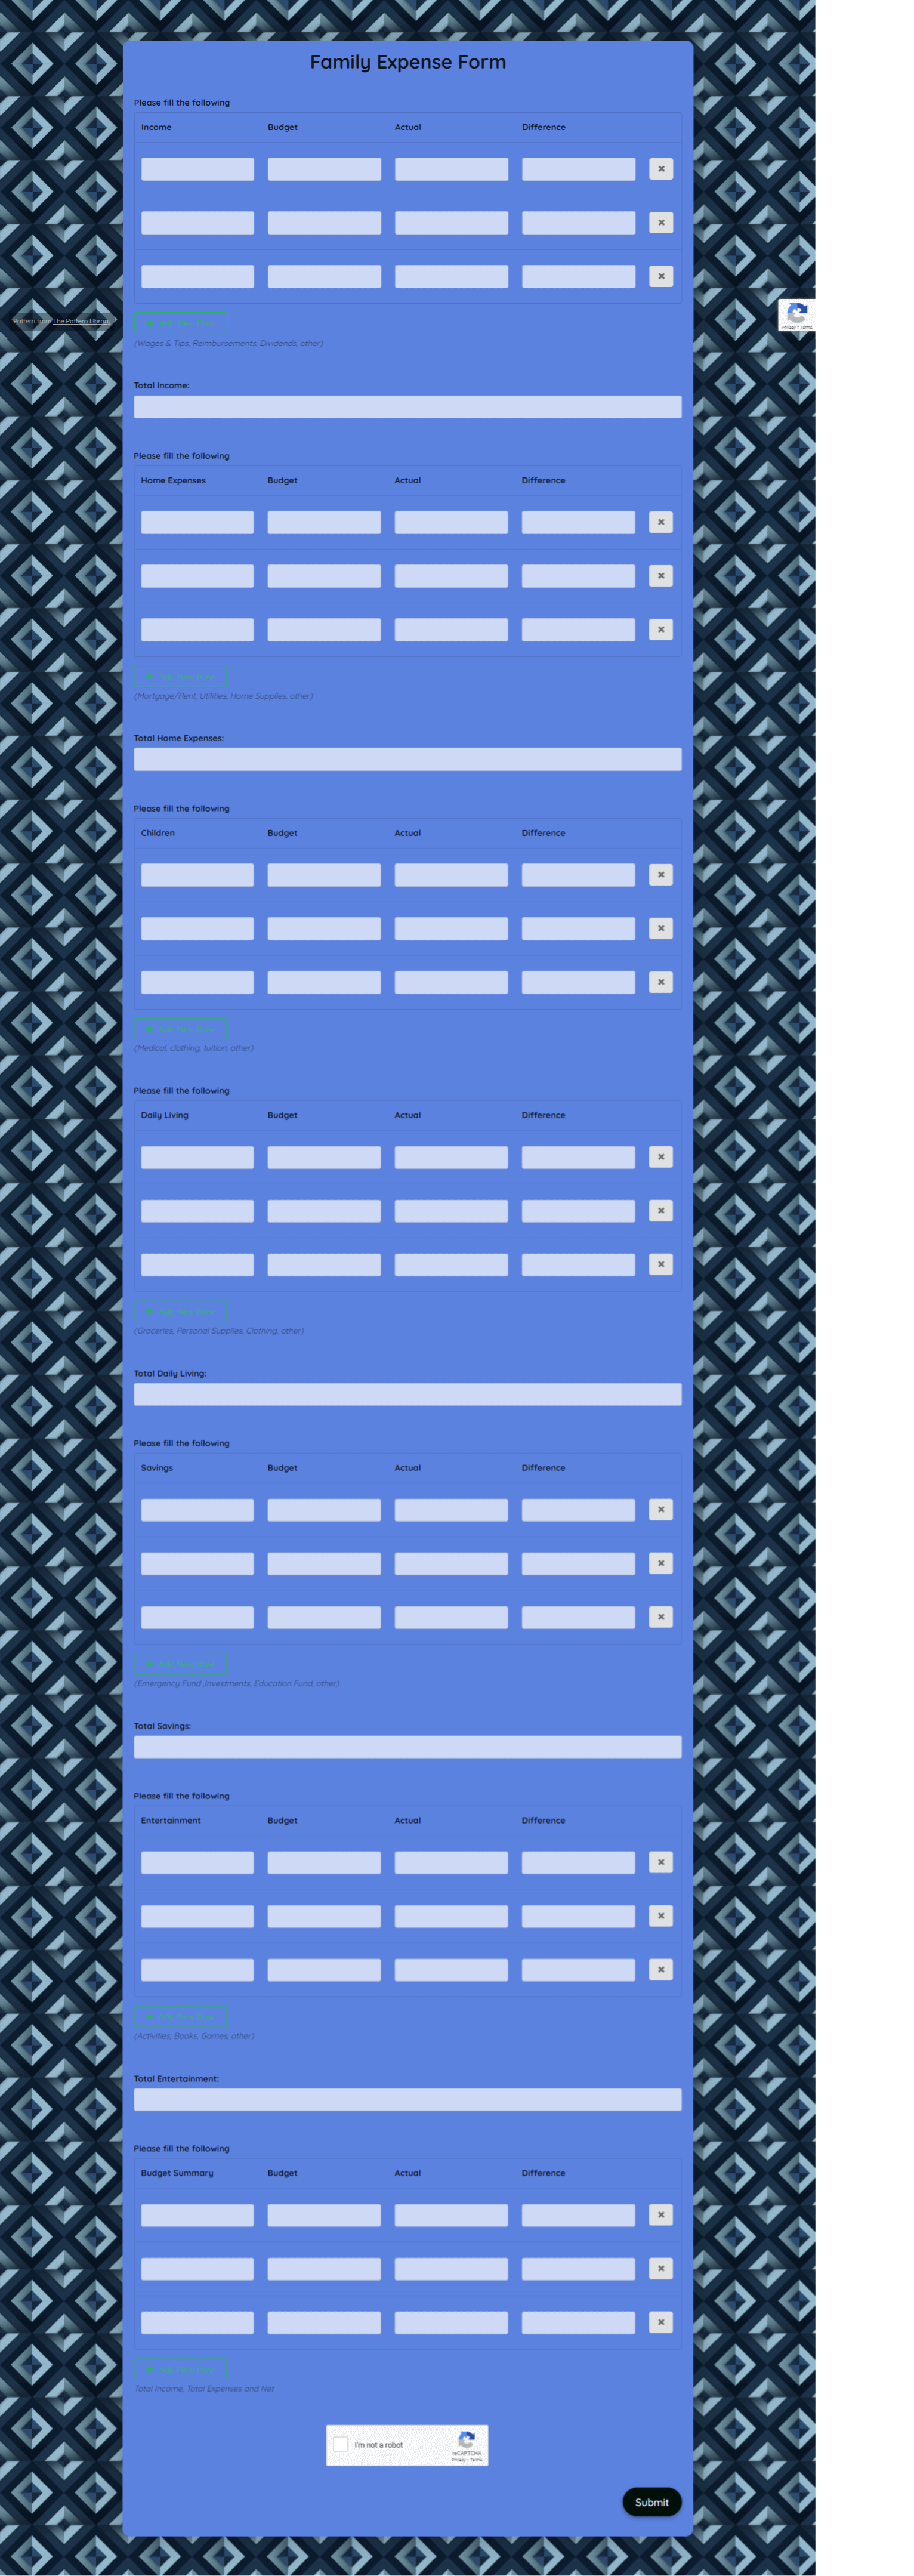 Family Expense Form Template template